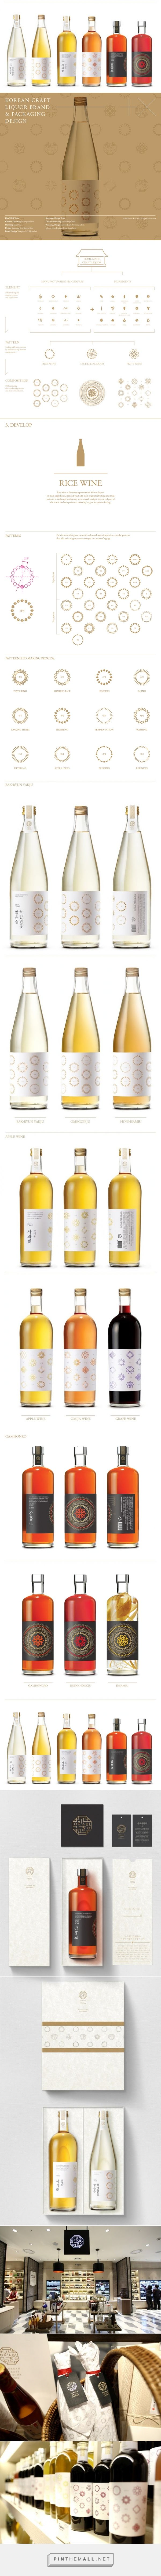 Shinsegae Traditional Liquor by Plus X BX Design Team & Shinsaegae Design Team